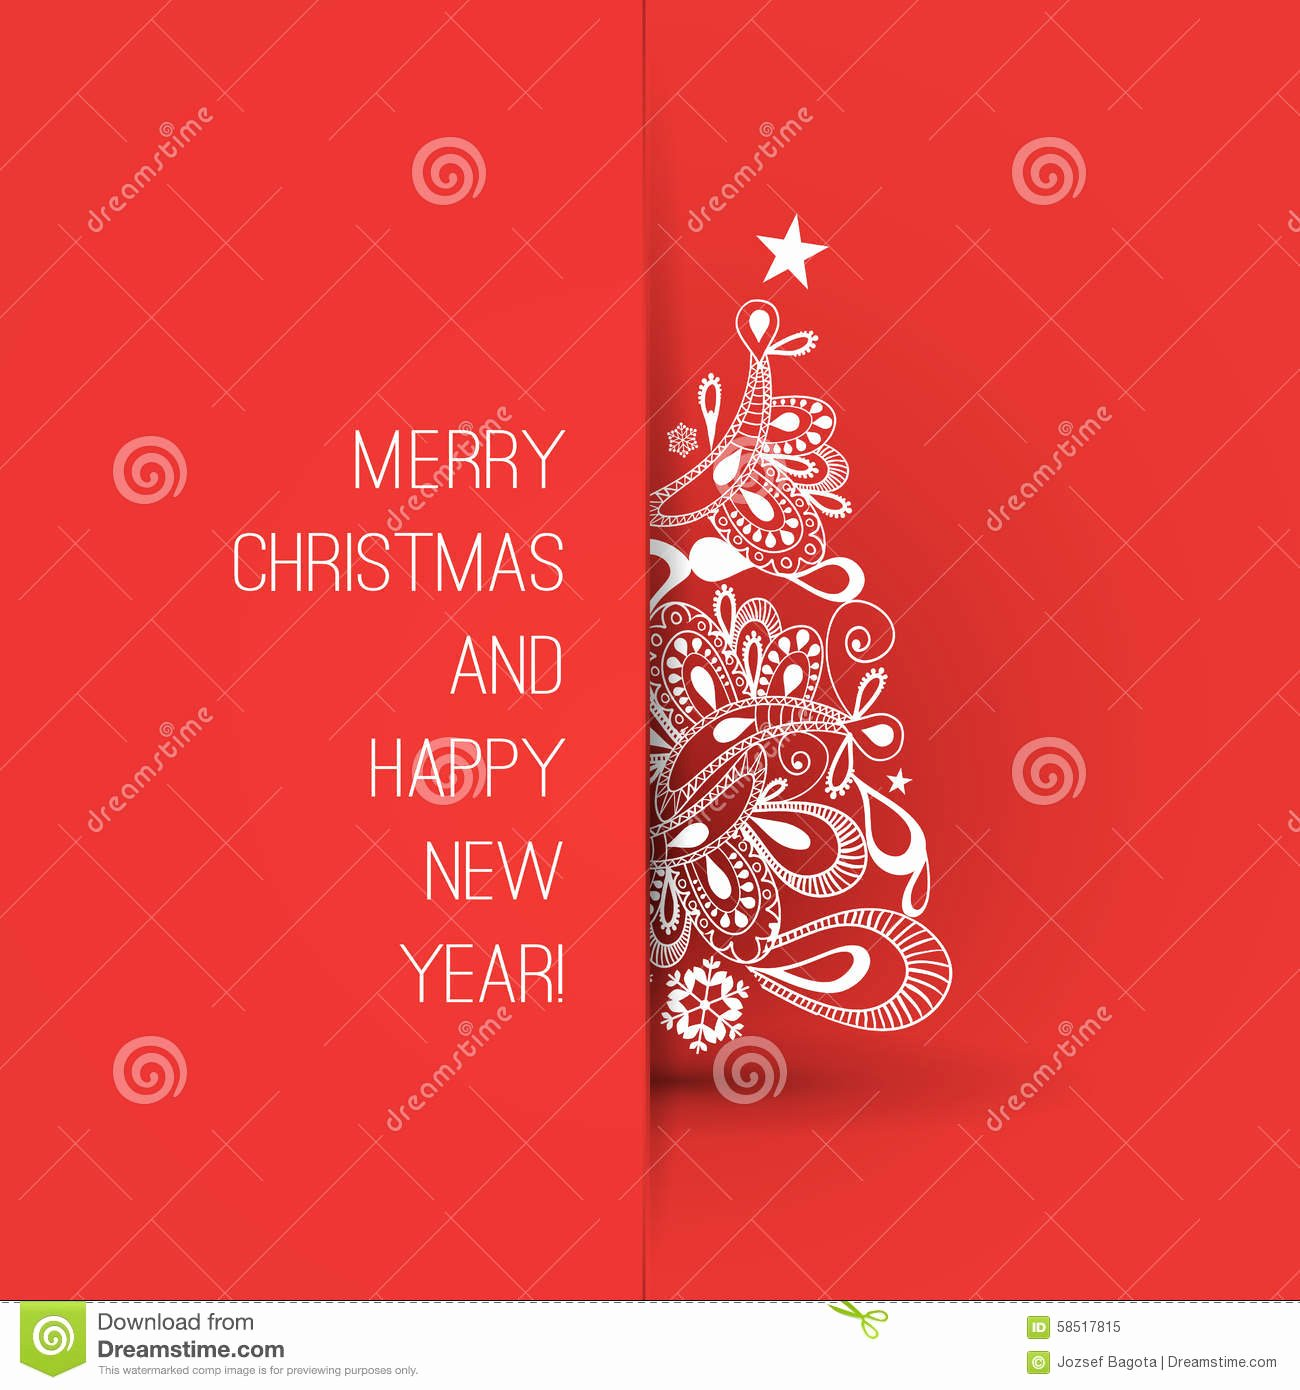 New Year Cards Templates Beautiful Merry Christmas New Year Templates – Festival Collections